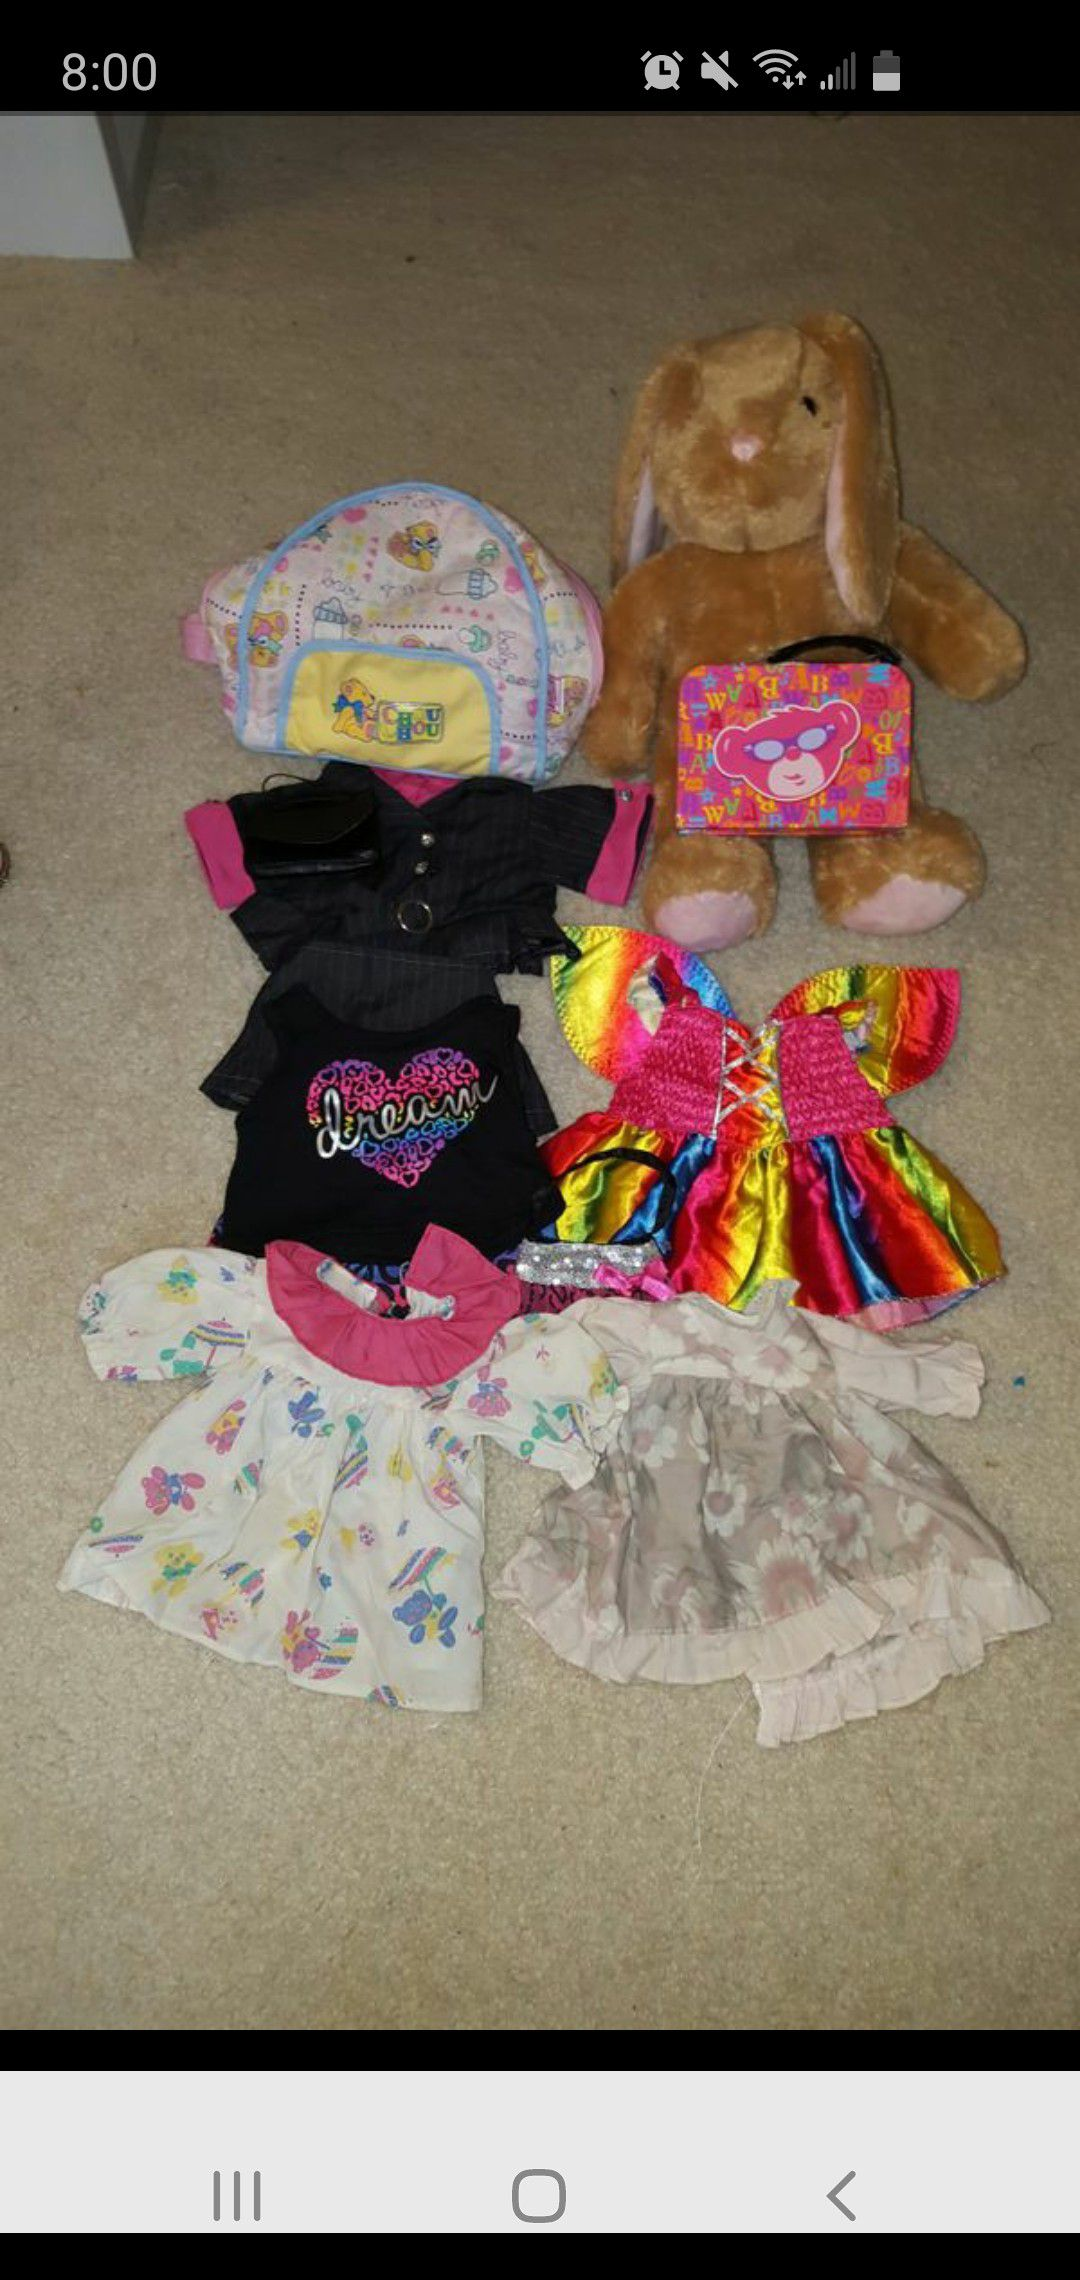 Build-A-Bear Workshop outfits and doll